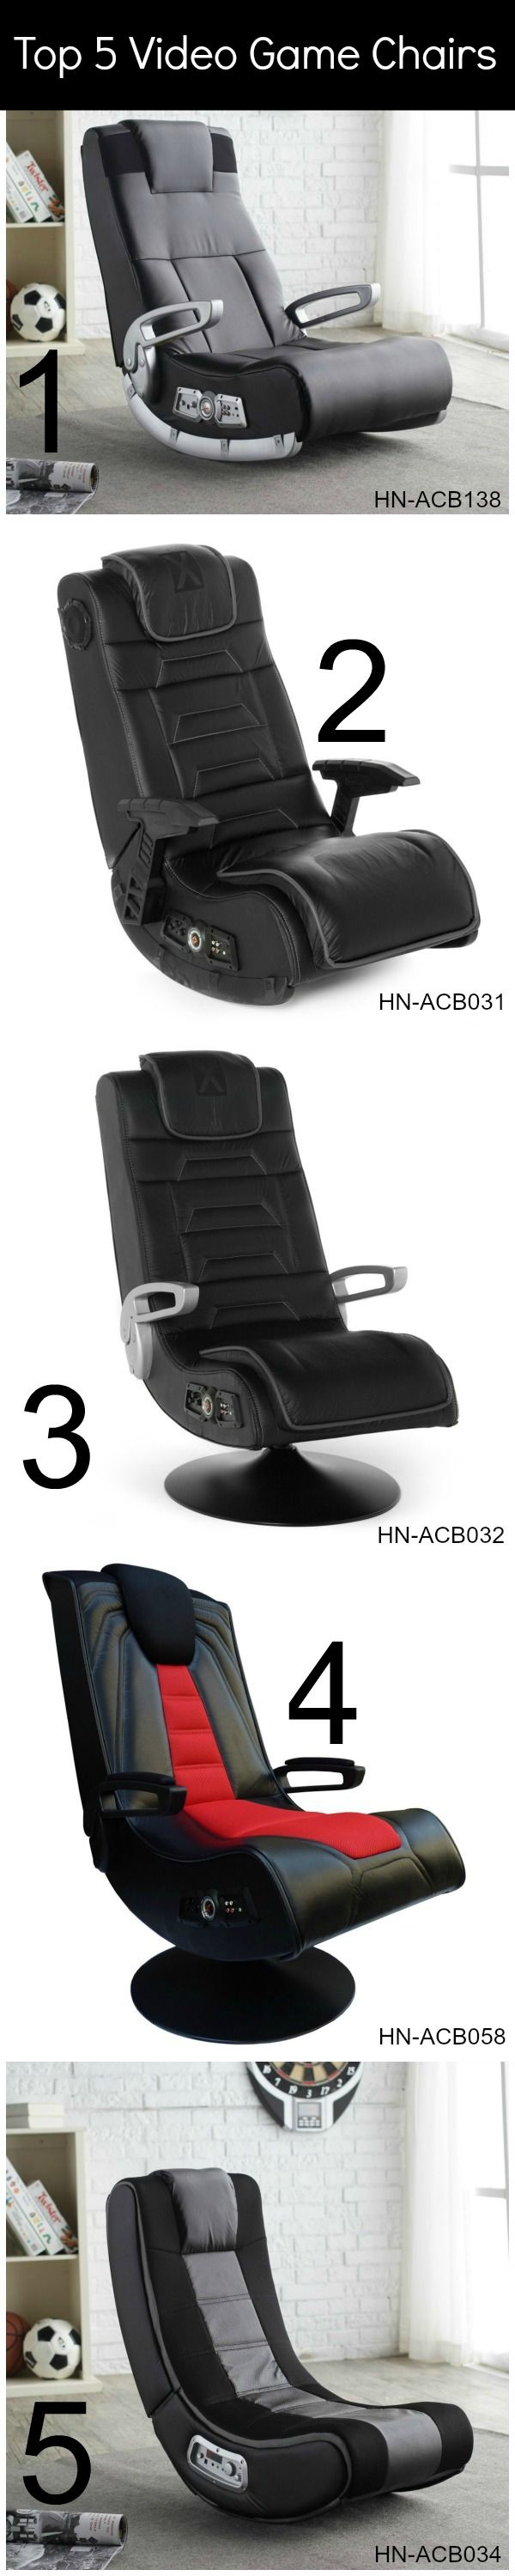 Top 5 video game chairs. Perfect gift!. Here are more free reviews for tech - http://goo.gl/Y0a3MW